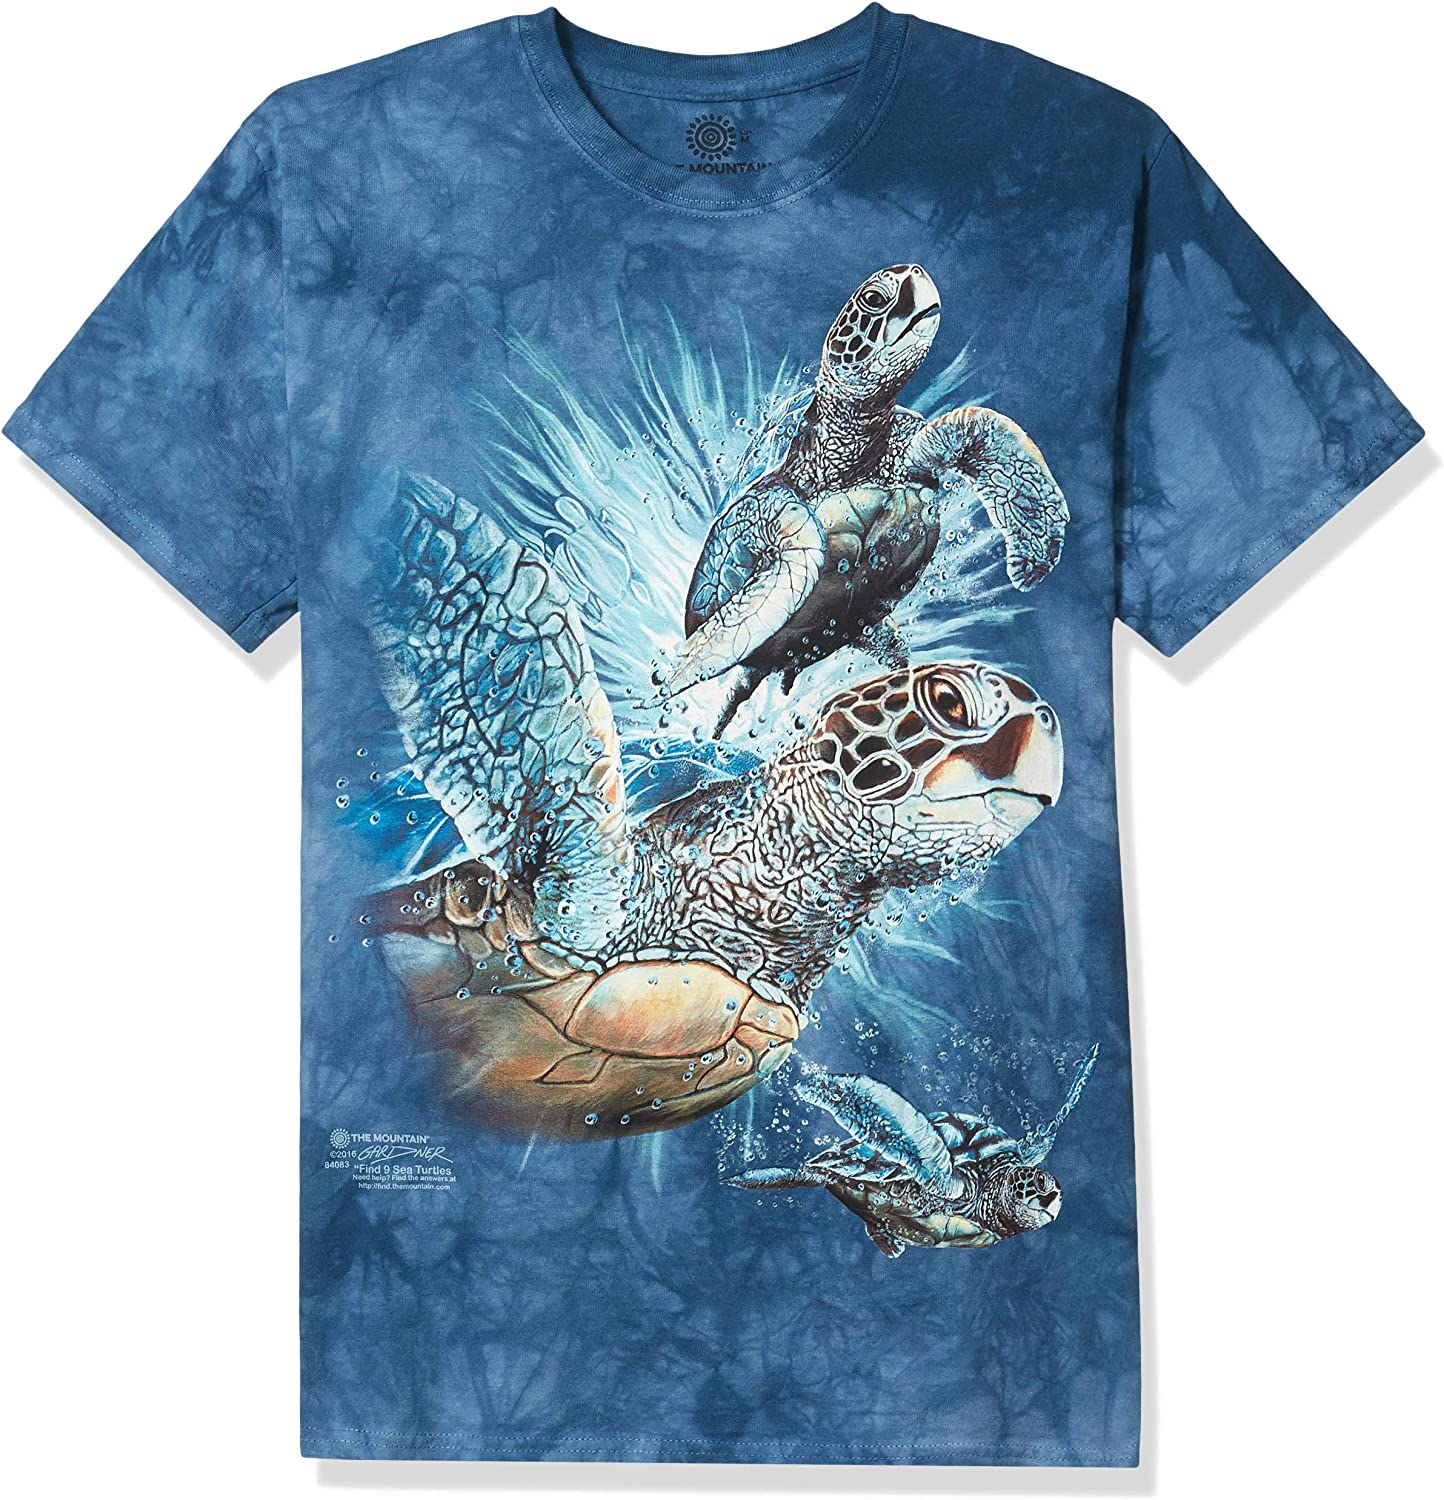 FIND 9 SEA TURTLES CHILD T-SHIRT THE MOUNTAIN